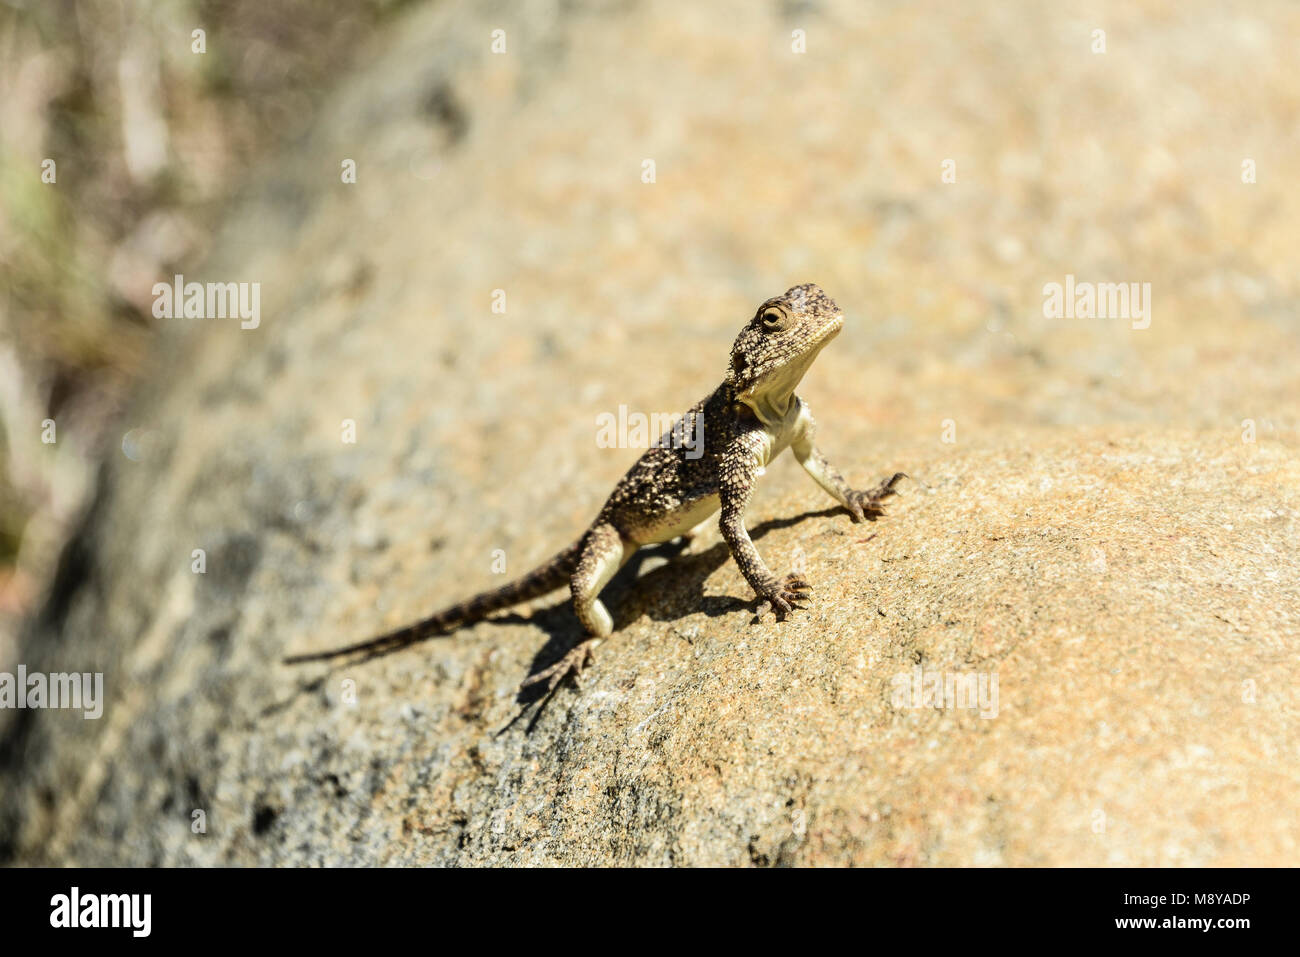 A southern rock agama (Agama atra) on a rock at the Valley Of Desolation, South Africa - Stock Image